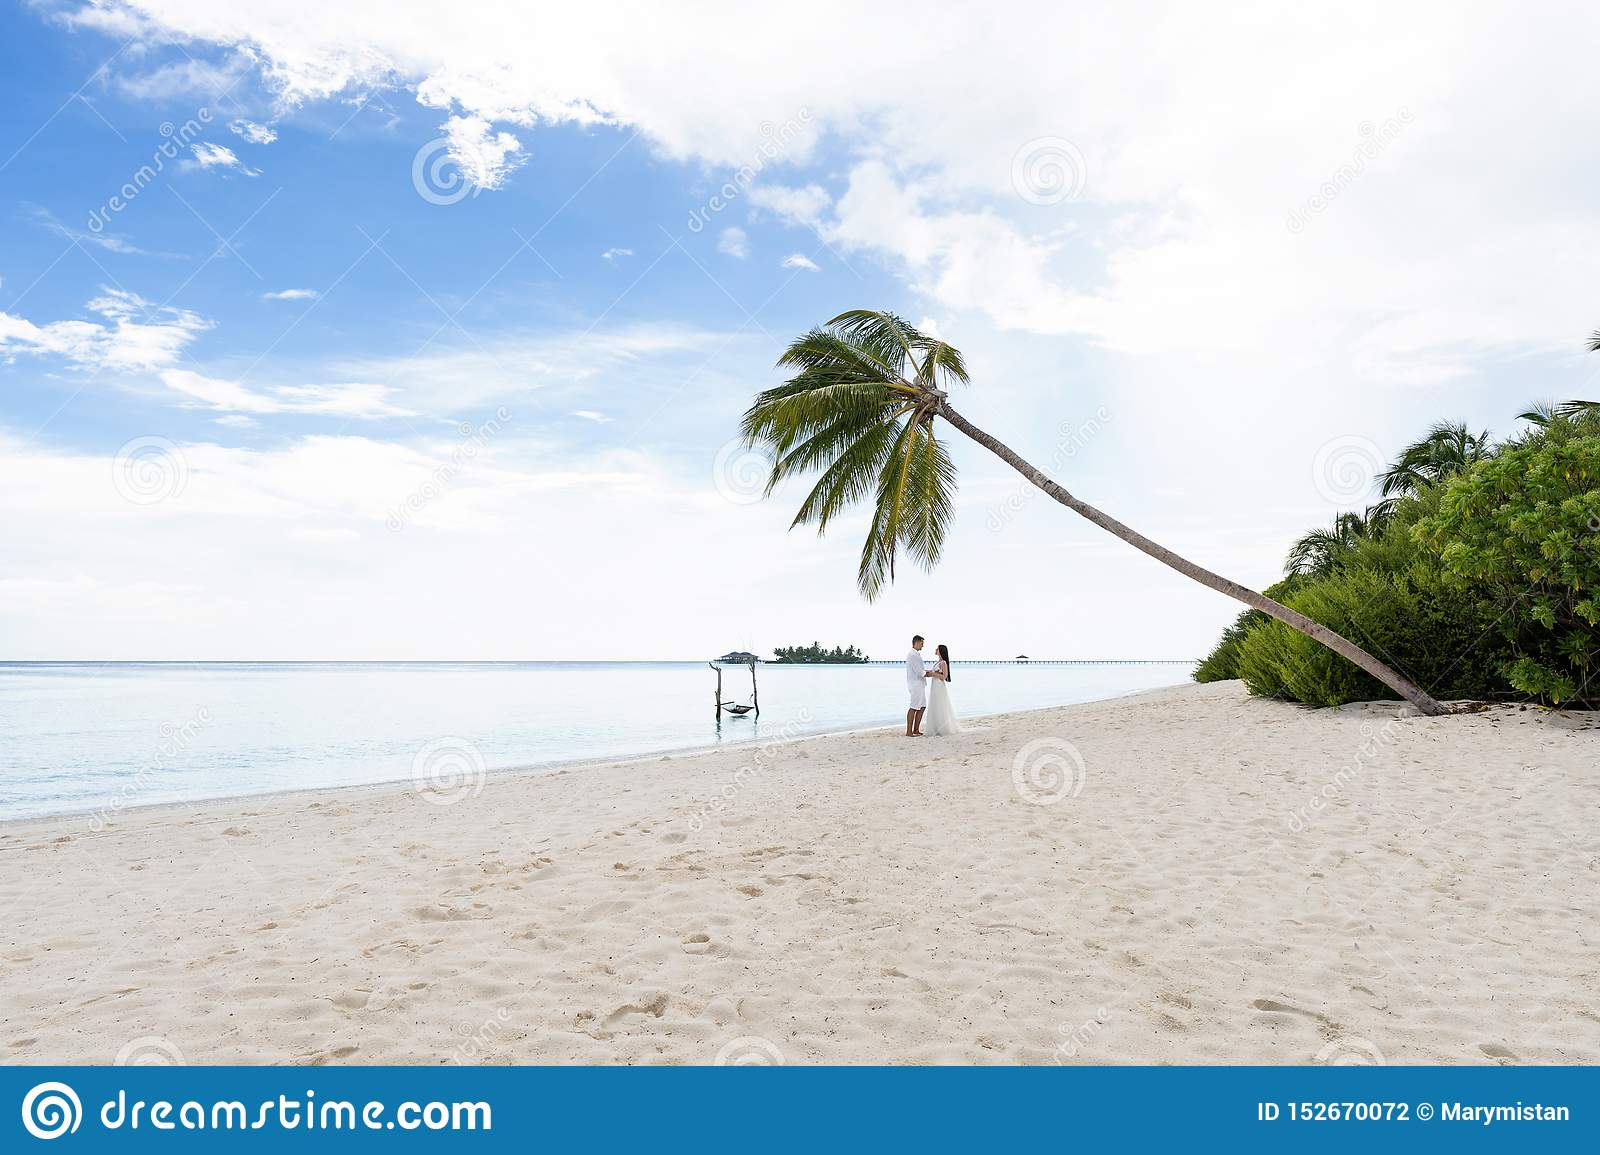 Newlyweds hug under a palm tree on a gorgeous beach with white sand and turquoise water